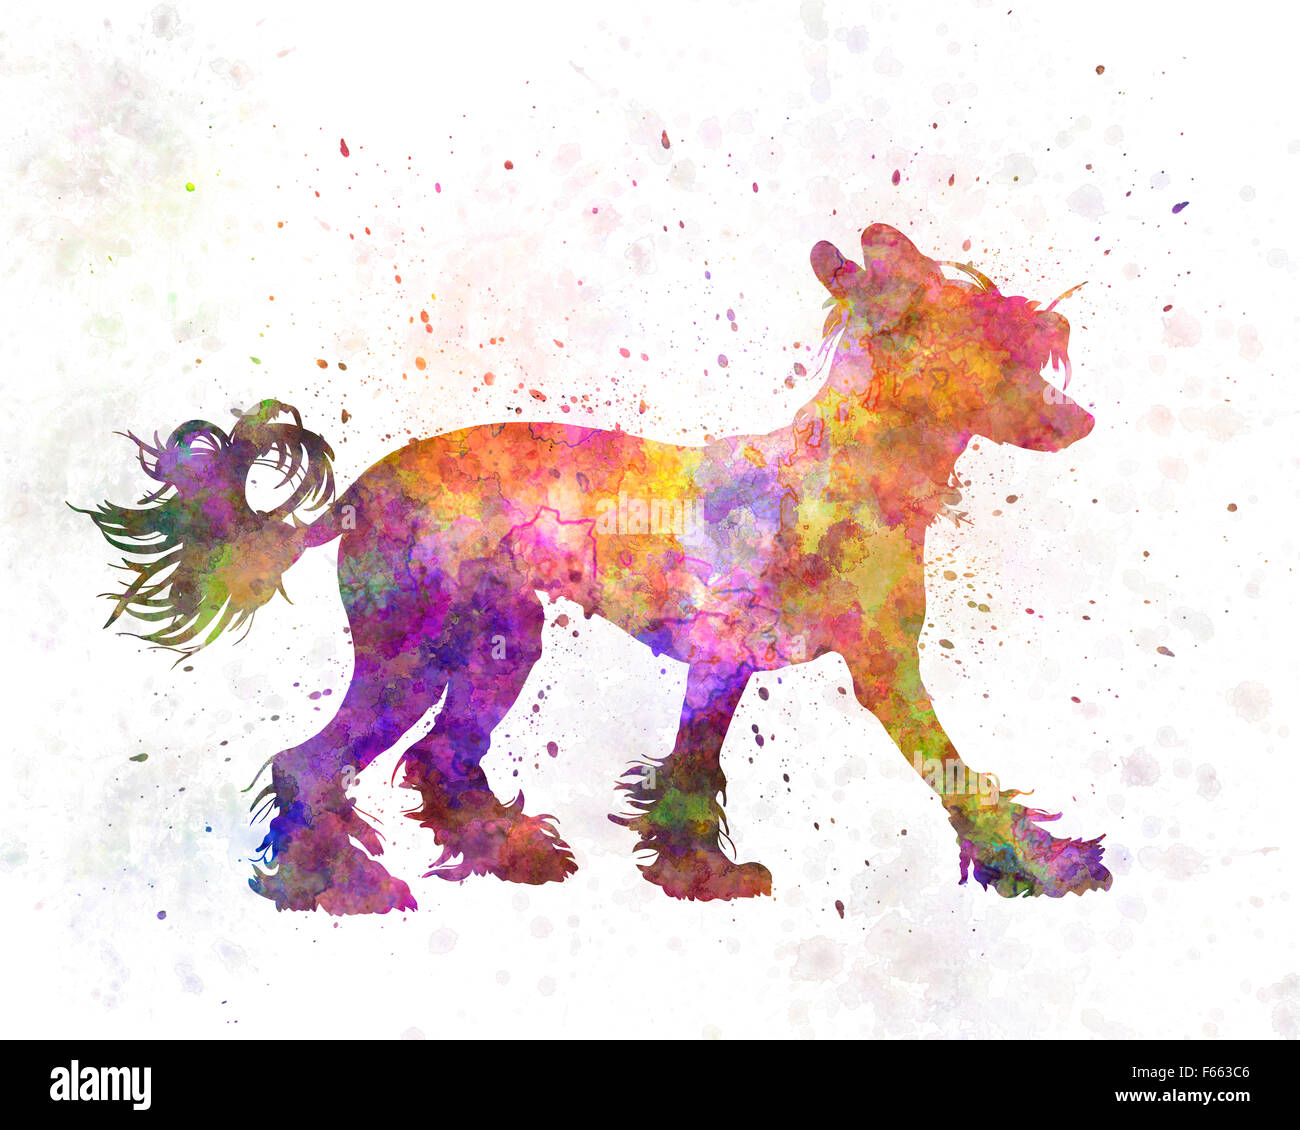 Chinese crested dog 01 in watercolor - Stock Image